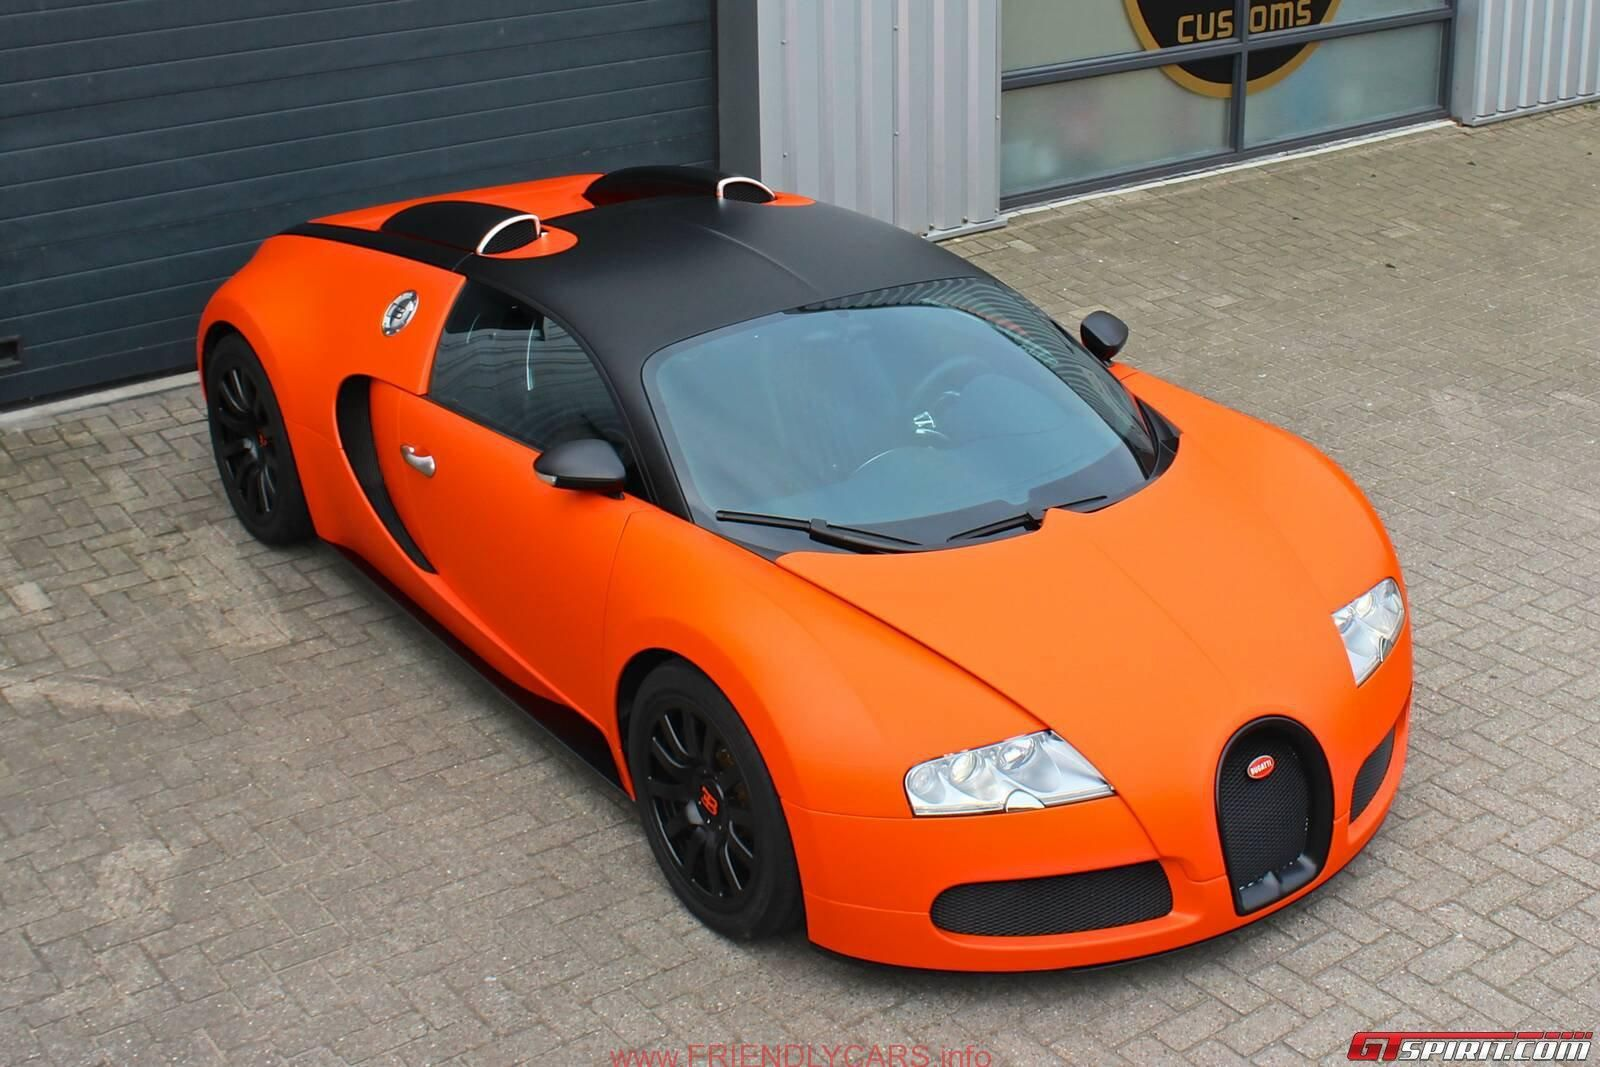 Exceptional Cool Audi R8 Matte Orange Car Images Hd Gallery Matte Orange Bugatti Veyron  Wrap By JD Customs